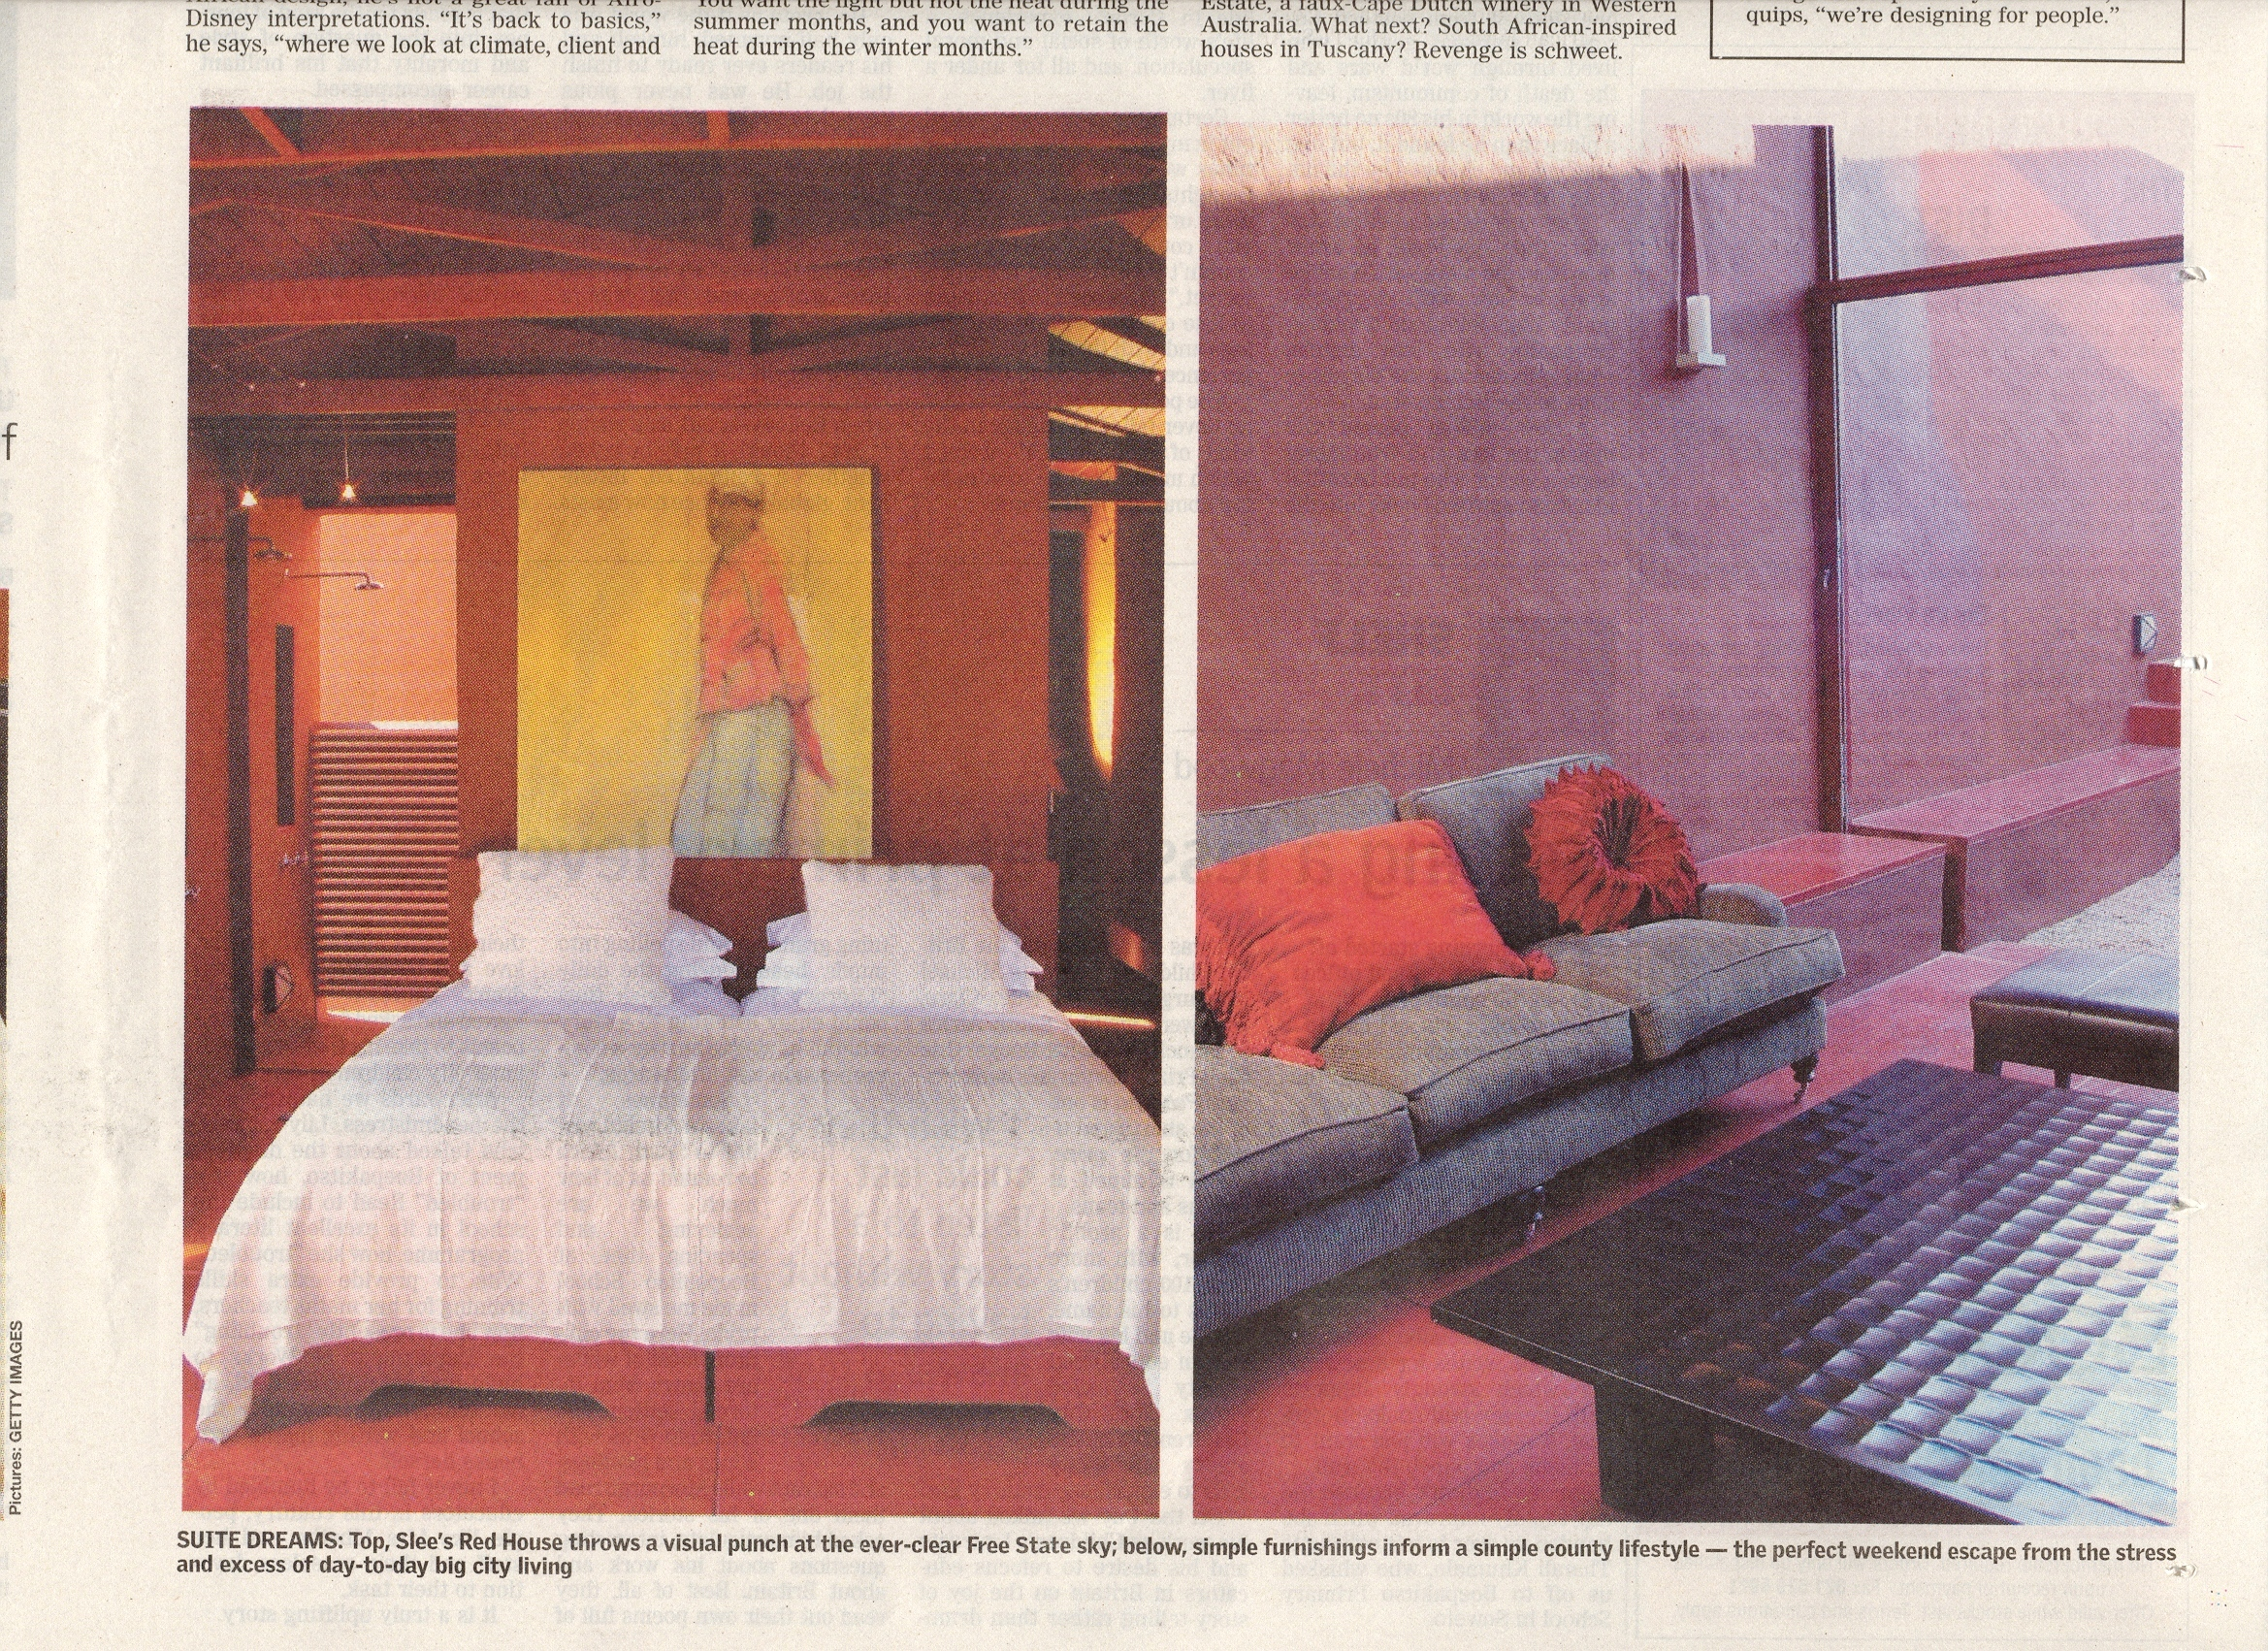 Sunday Times Lifestyle.2005.April.17.p15.1.Red Hot Free State.jpg